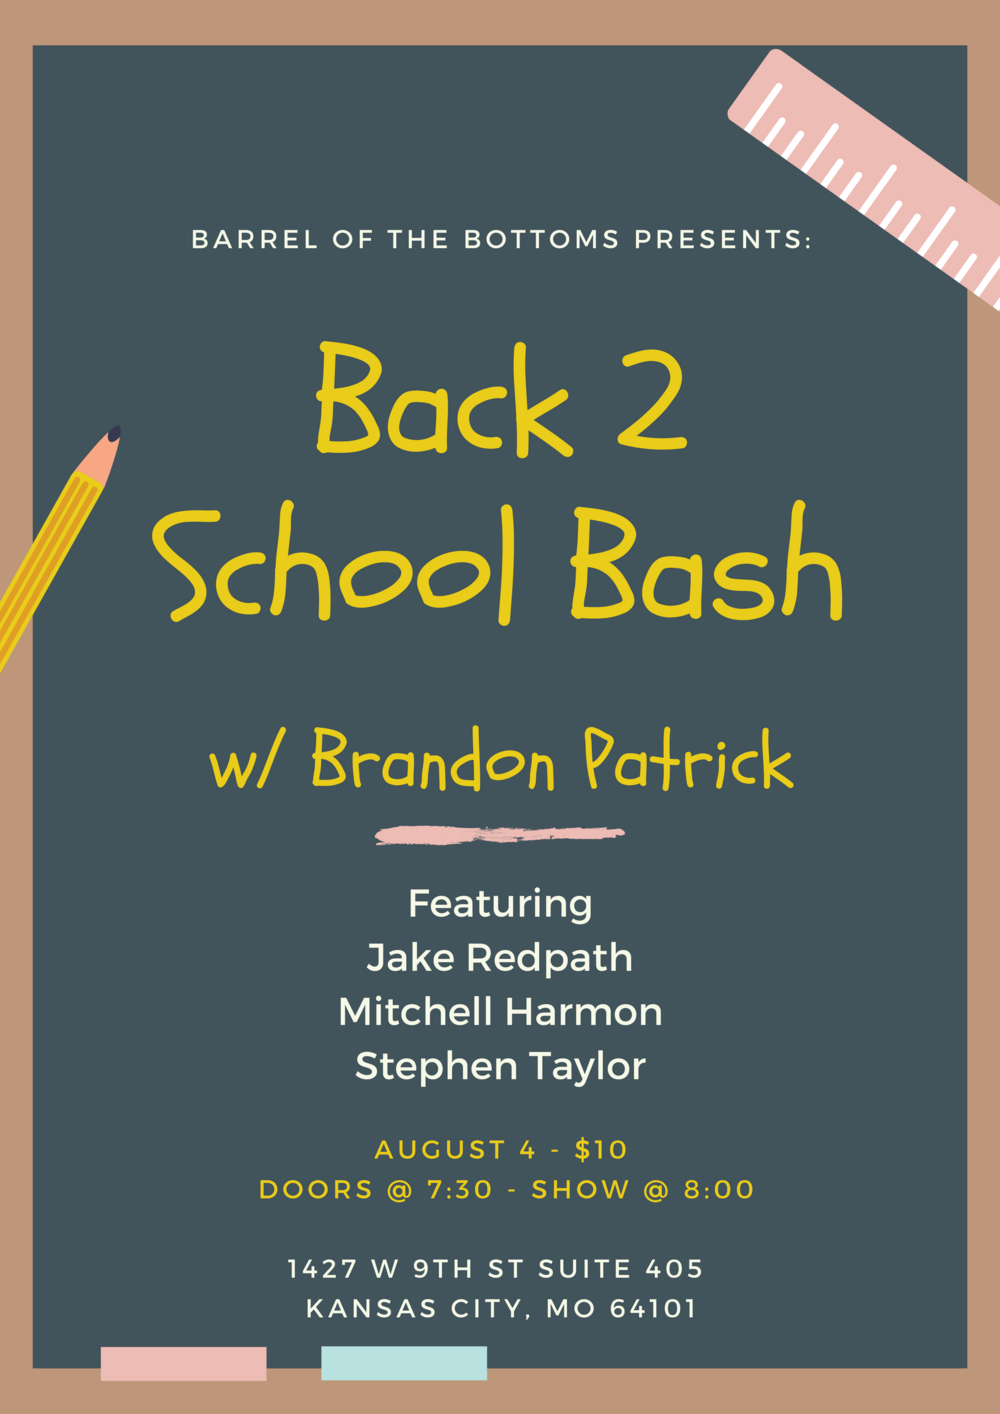 Events — Barrel of the Bottoms